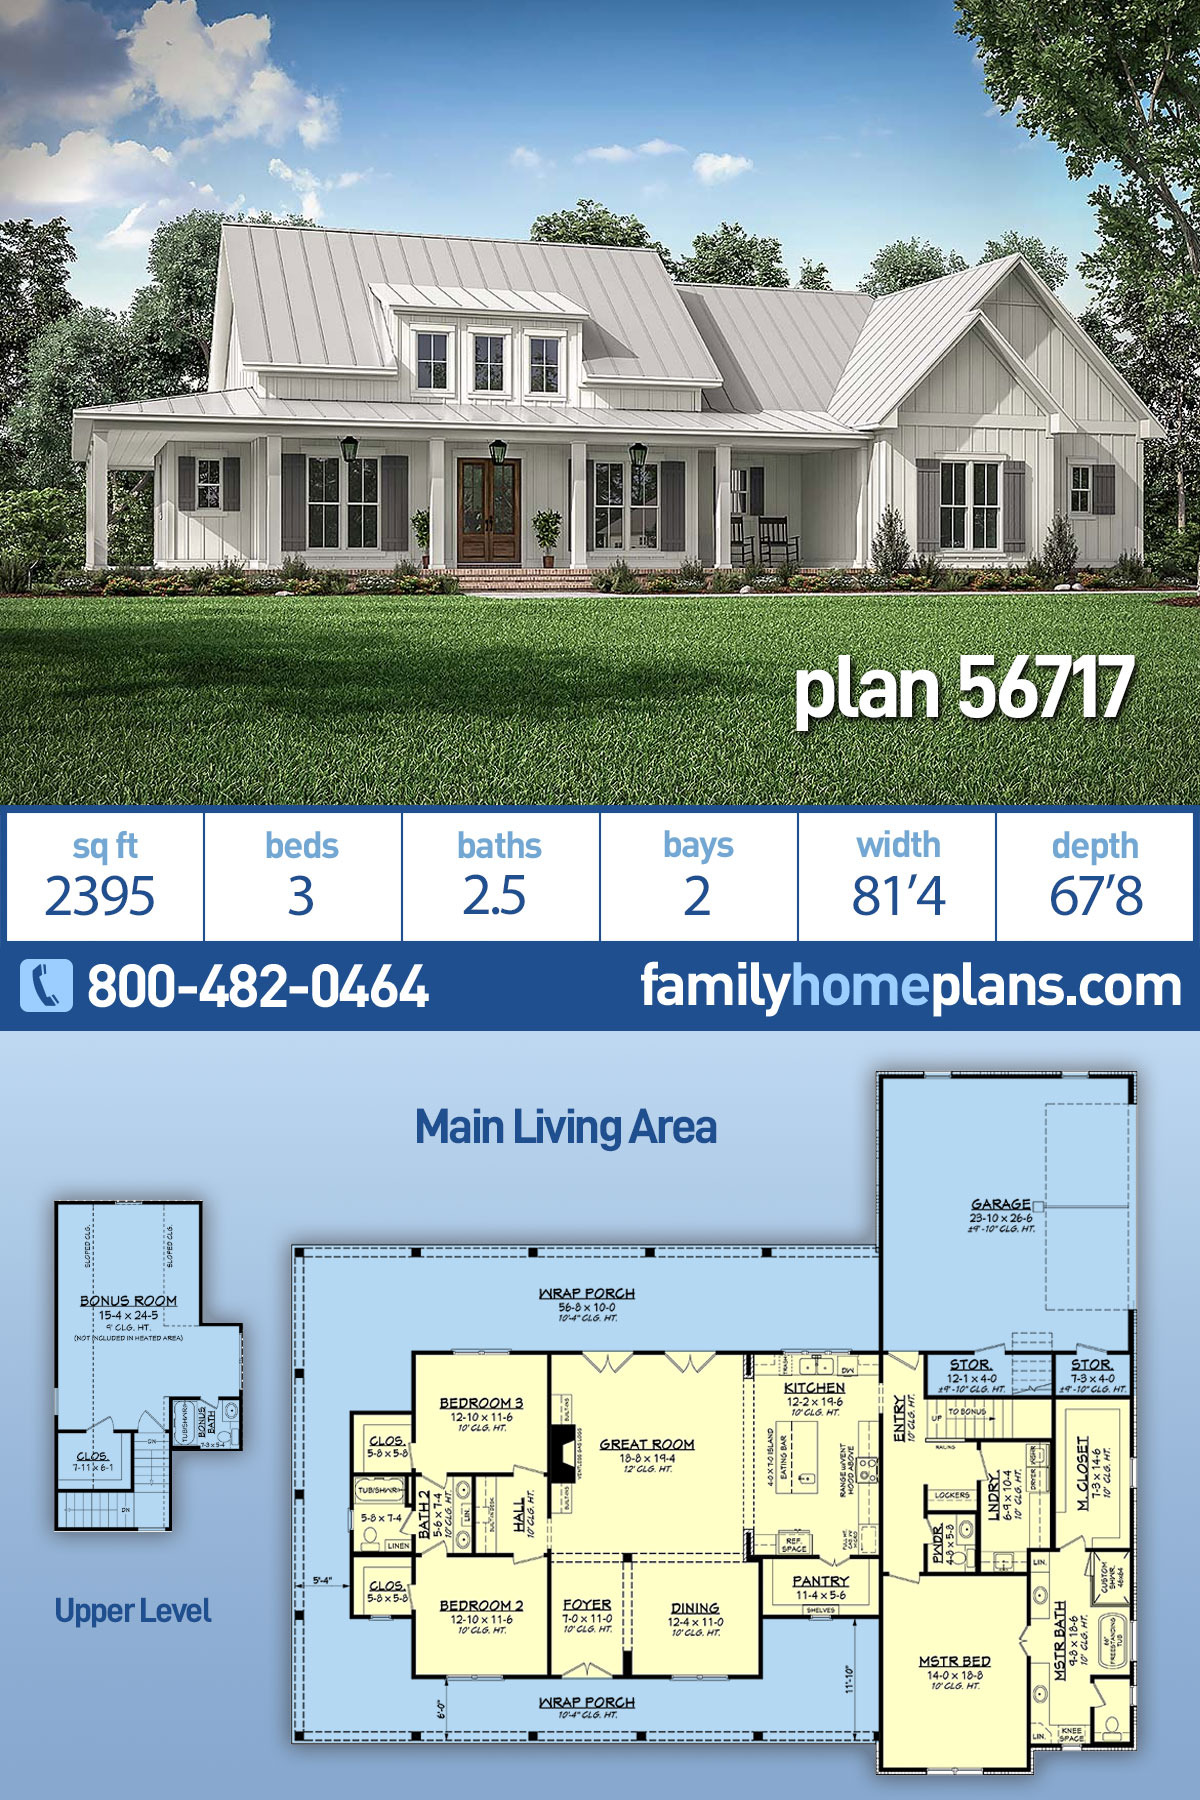 House Plan Books Online New Farmhouse Style House Plan with 3 Bed 3 Bath 2 Car Garage